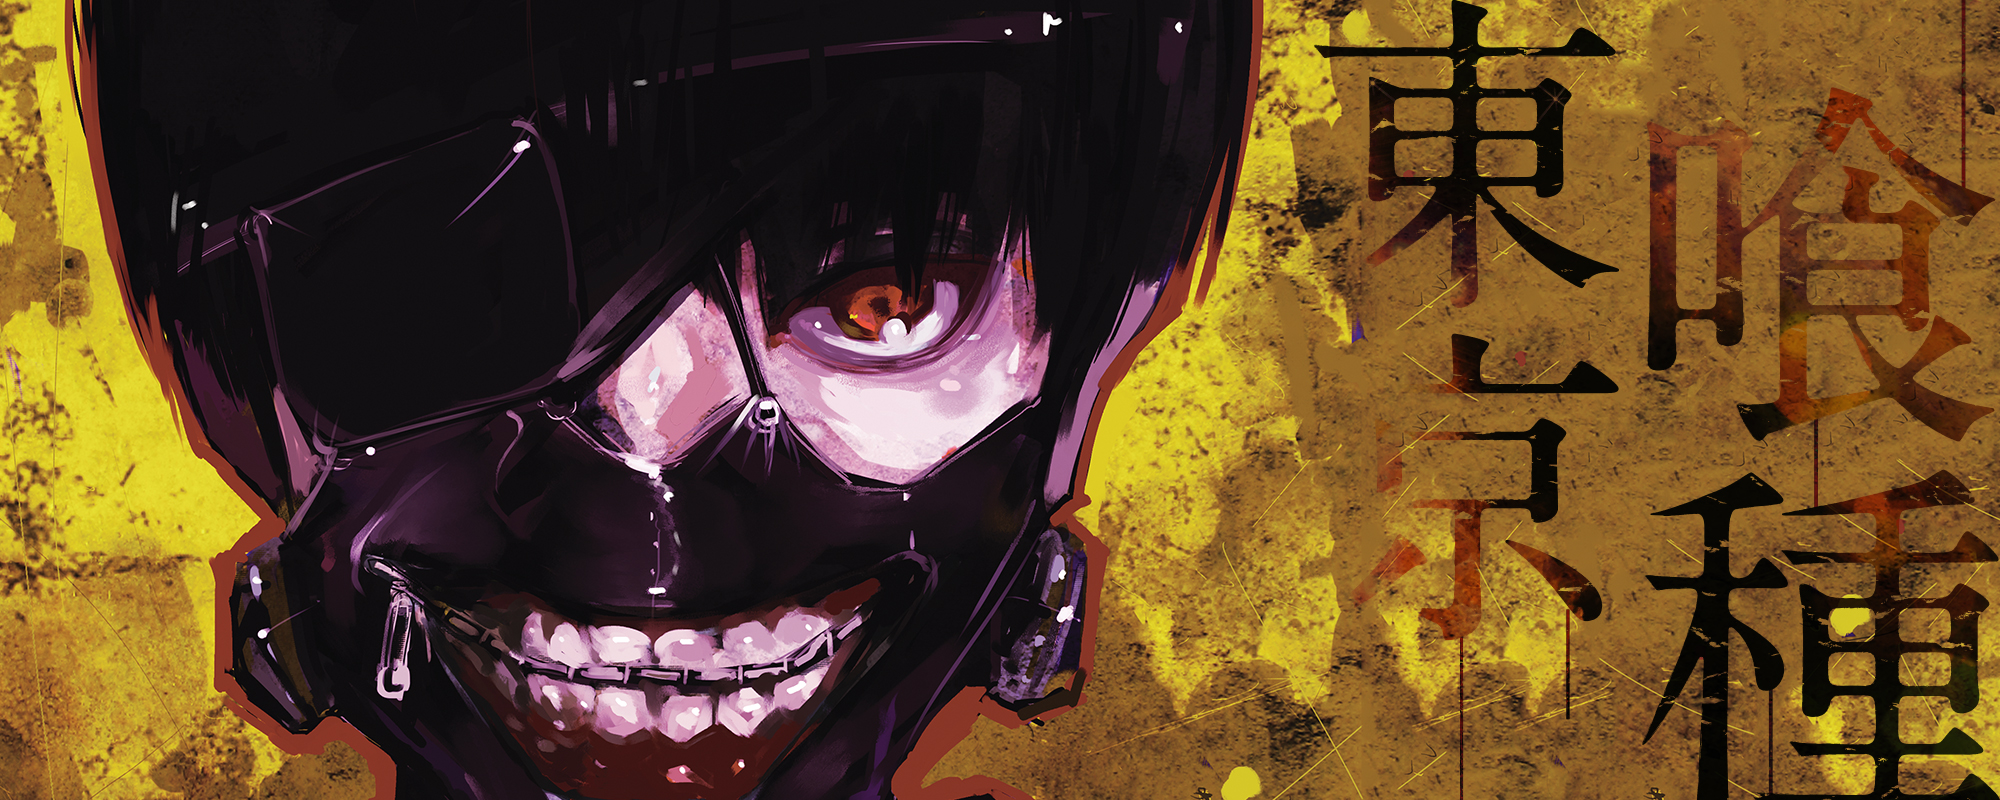 Tokyo Ghoul' season 3 release date, news, rumors: Production